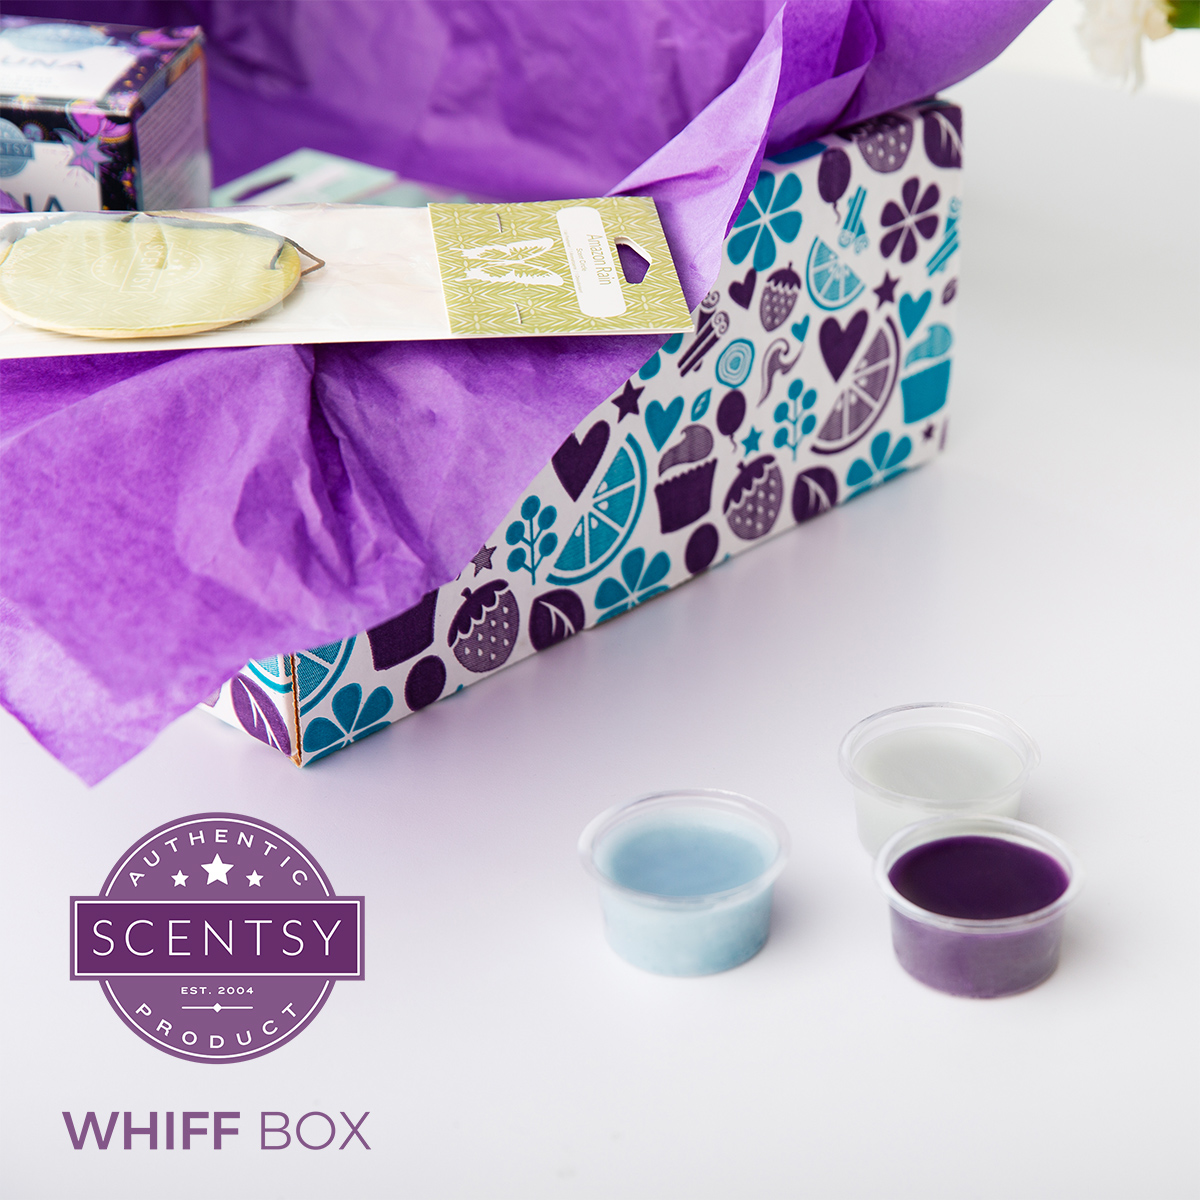 Scentsy Whiff Box Subscription